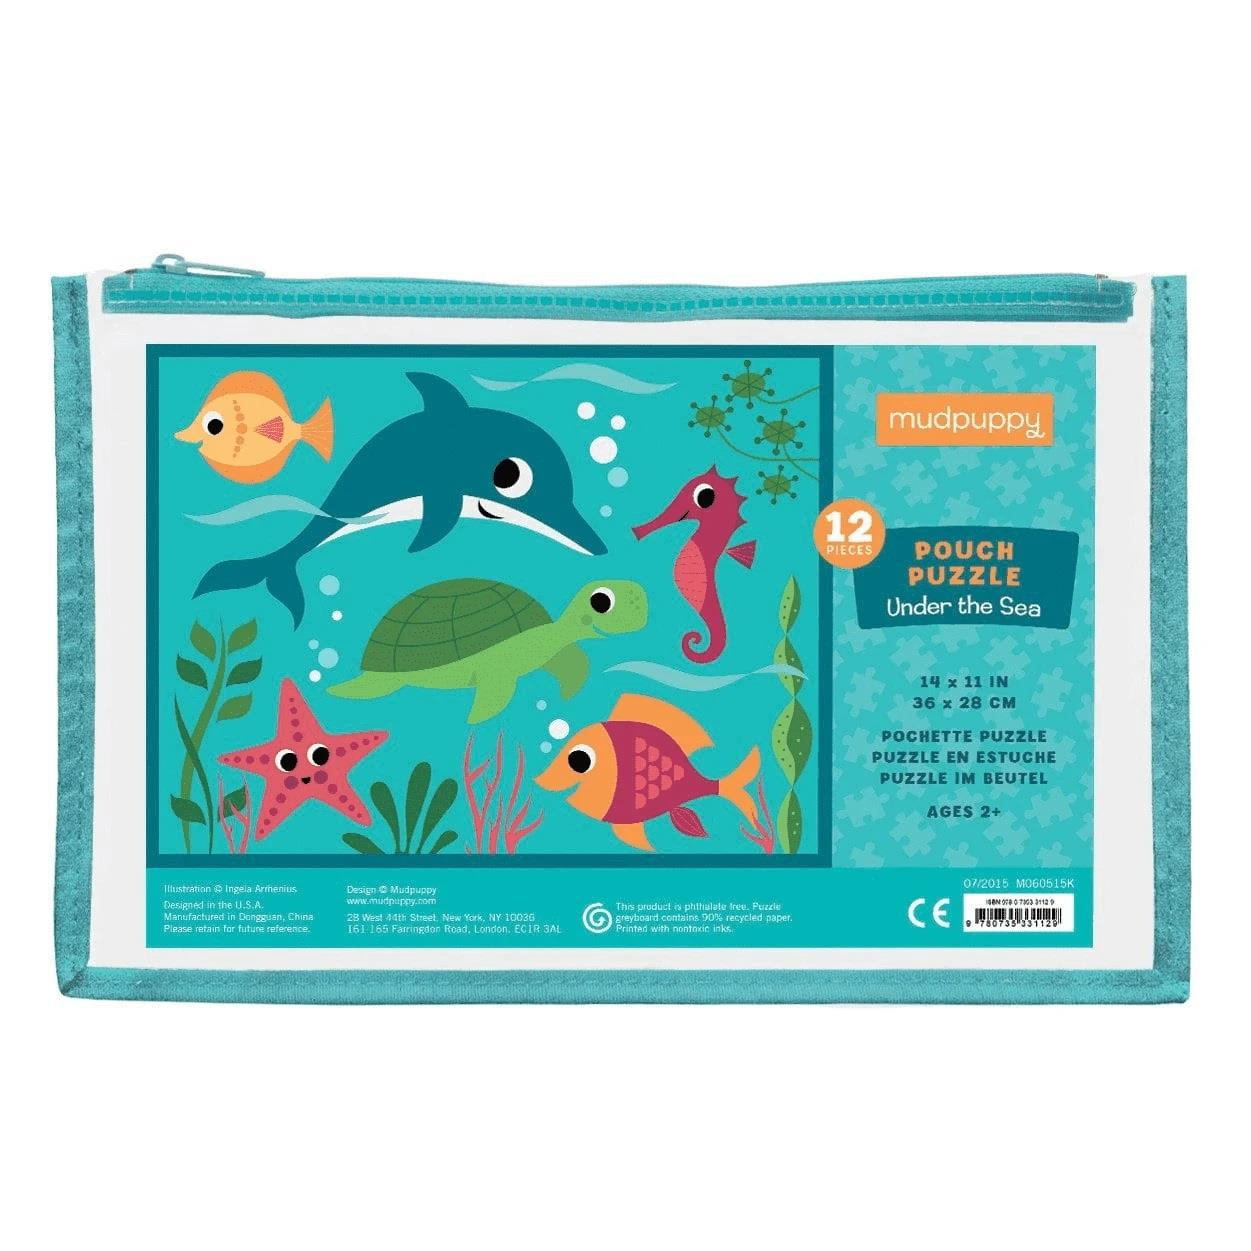 Under The Sea - 12 Piece Pouch Puzzle